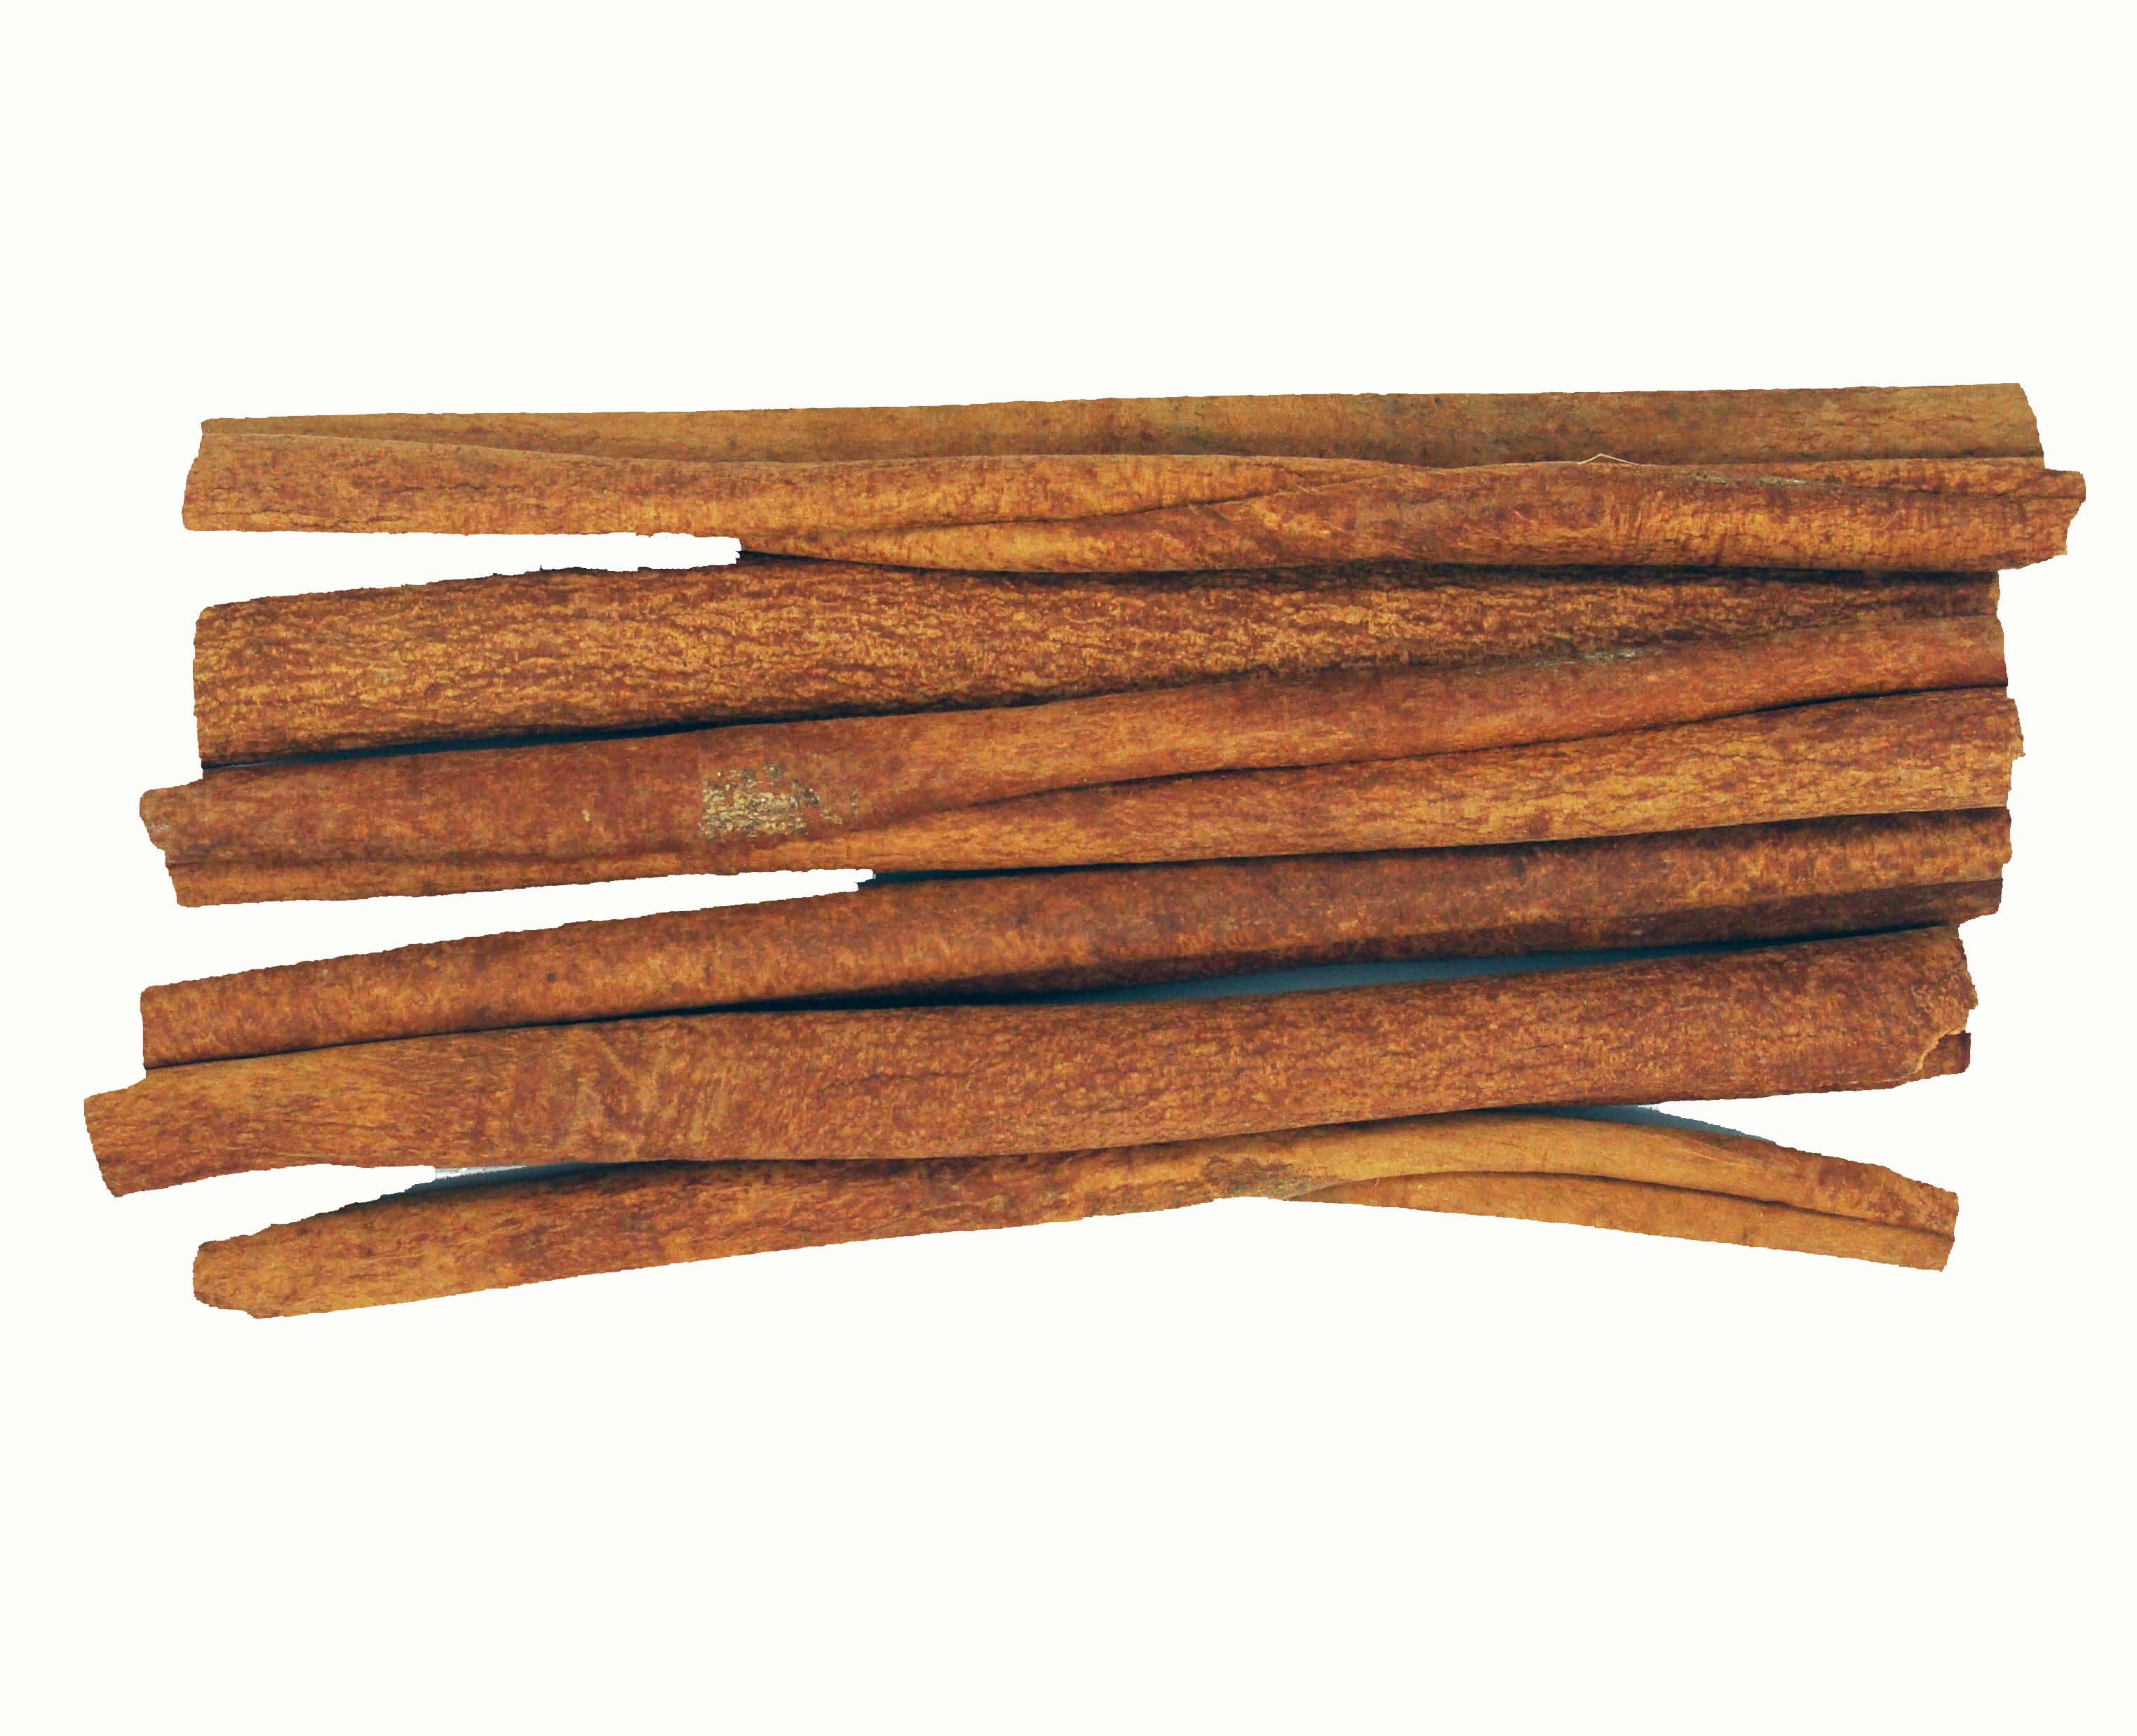 Cinnamon Quills / Sticks